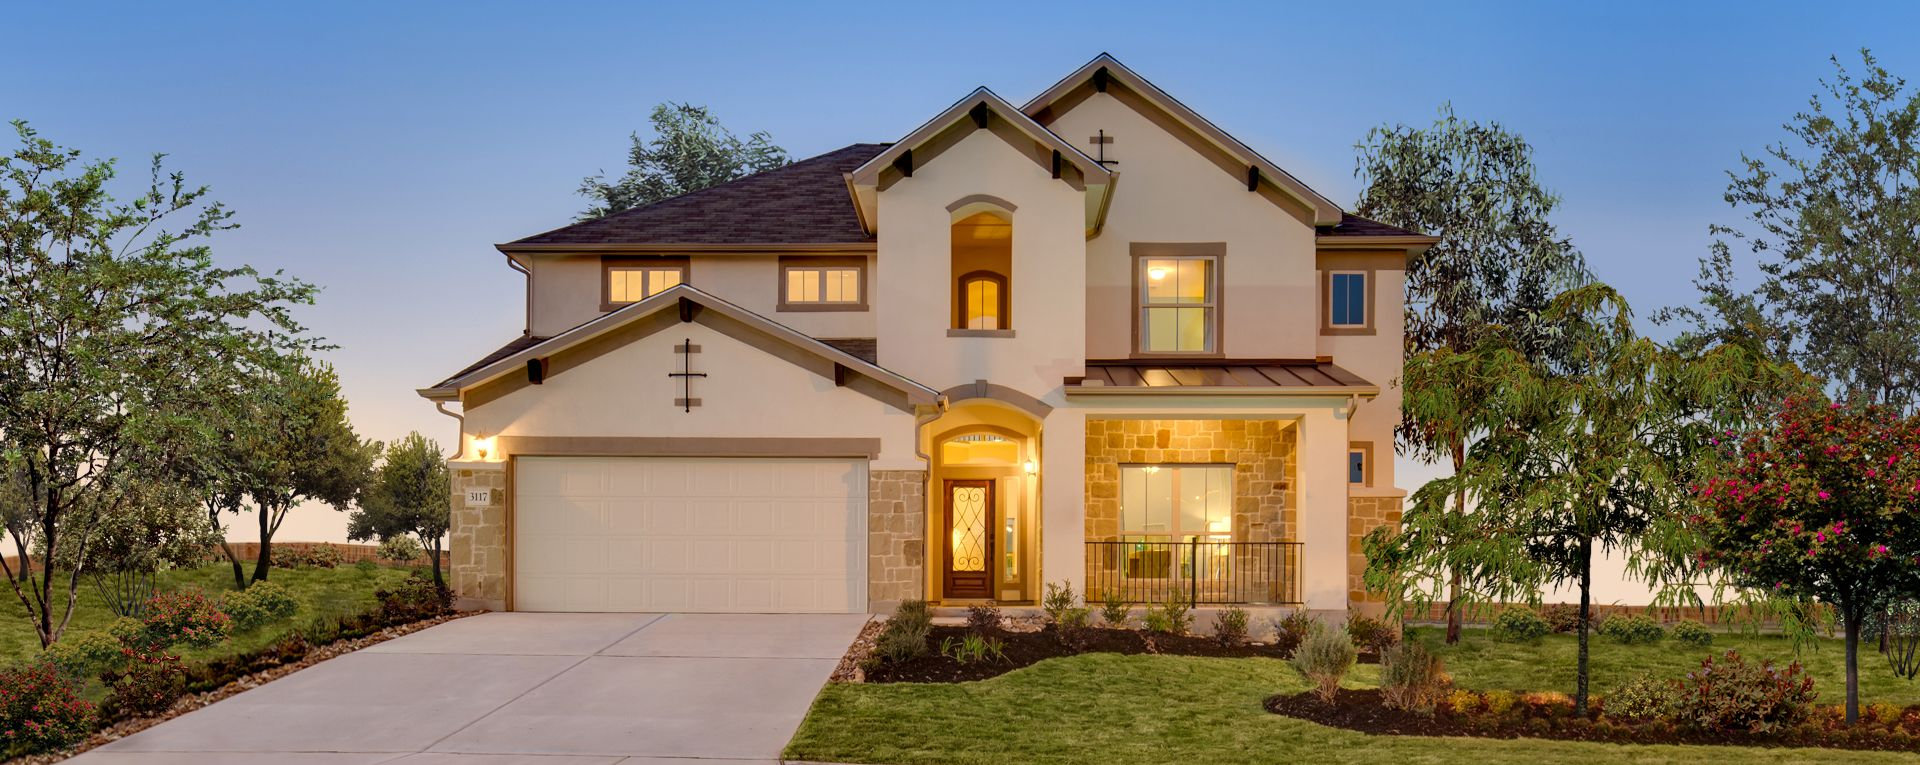 New homes in san antonio new home builders texas san for Texas house builders